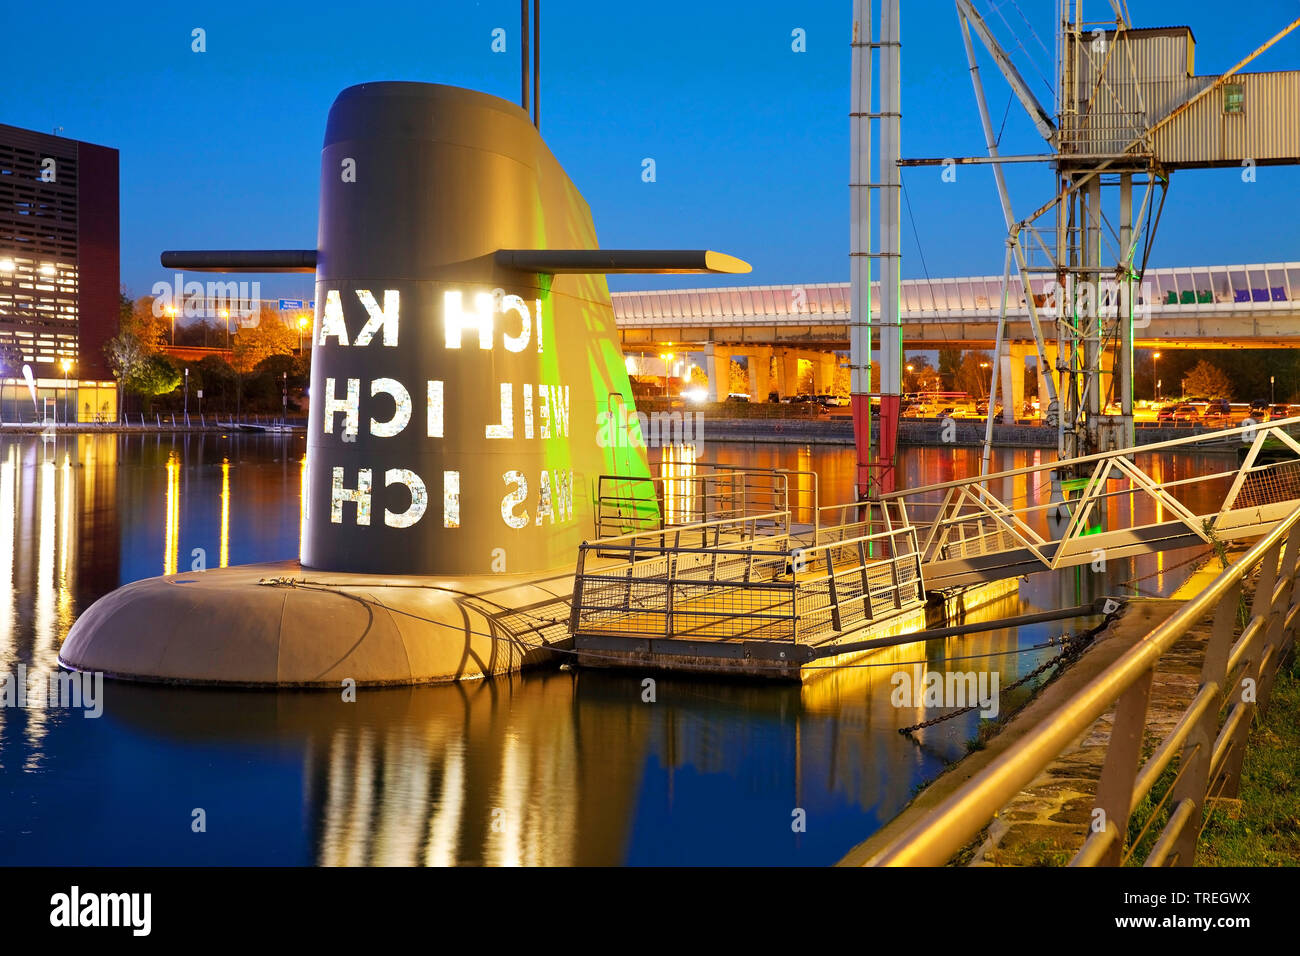 Kunst-U-Boot am Museum Kueppersmuehle in der Daemmerung, Deutschland, Nordrhein-Westfalen, Ruhrgebiet, Duisburg | artwork submarine at the Museum Kuep - Stock Image